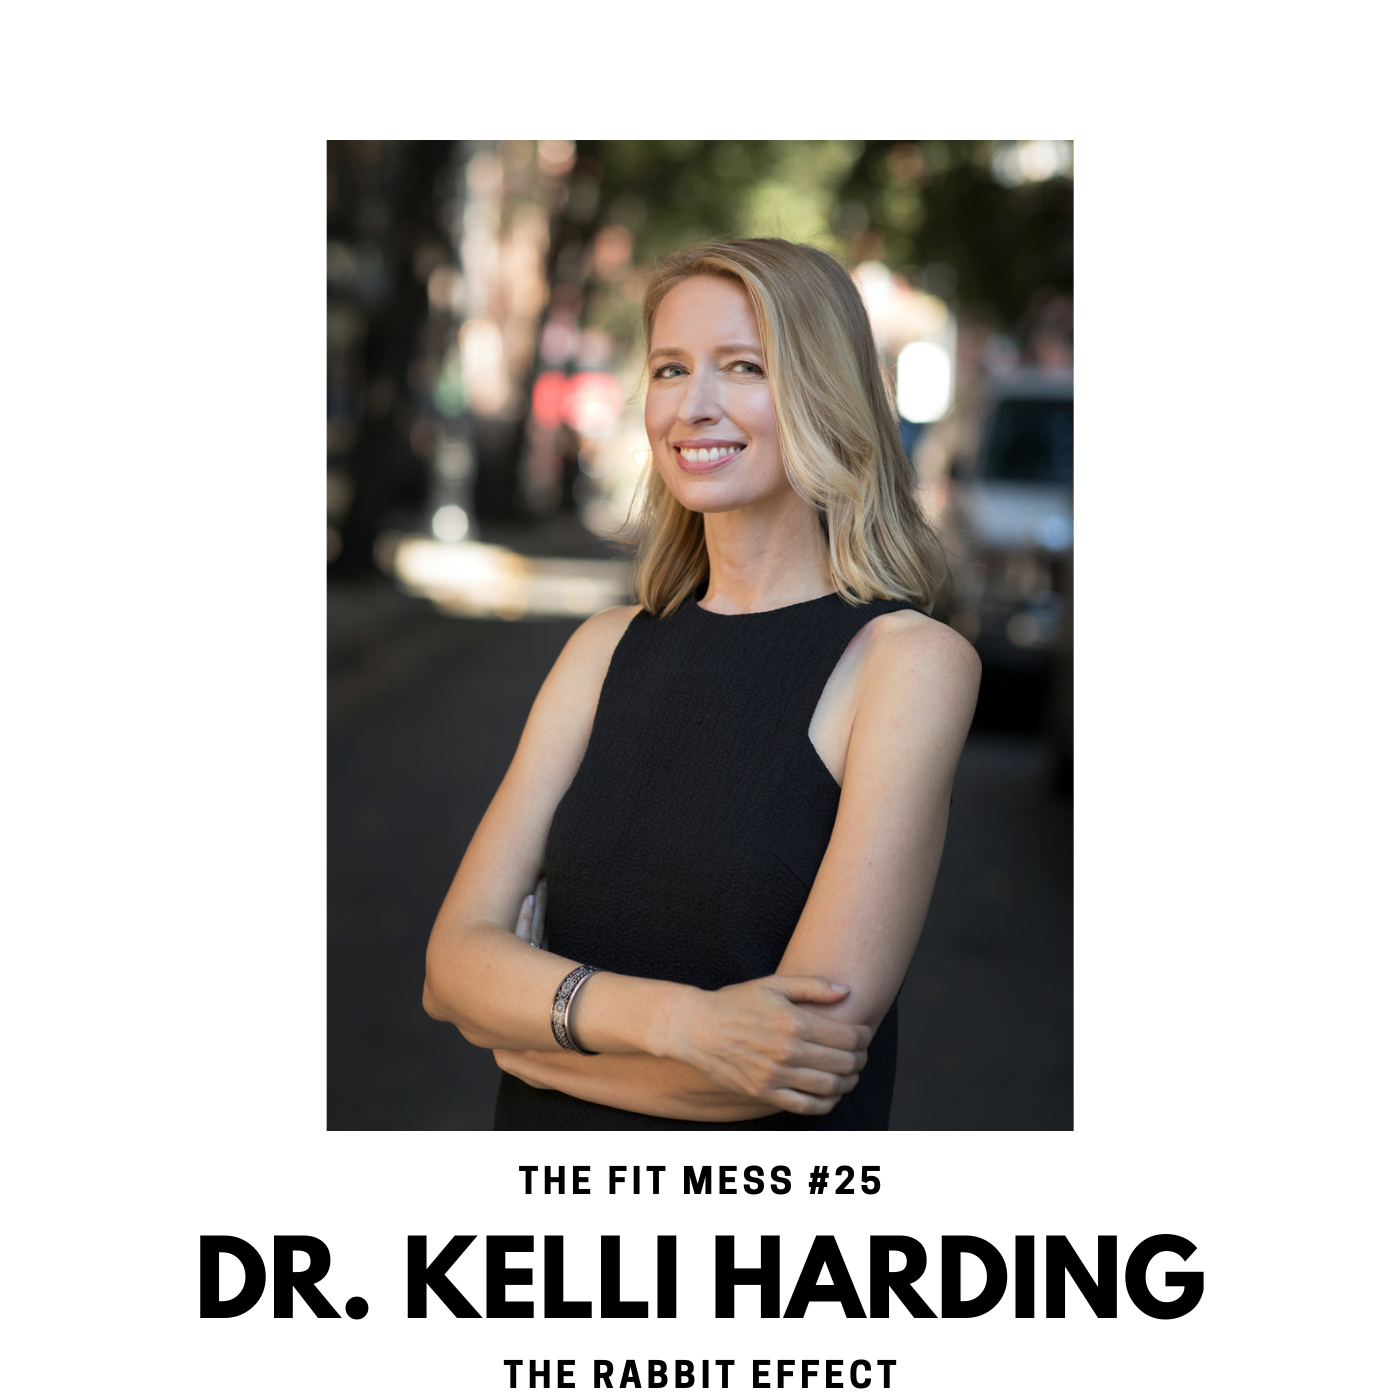 The Rabbit Effect with Dr. Kelli Harding